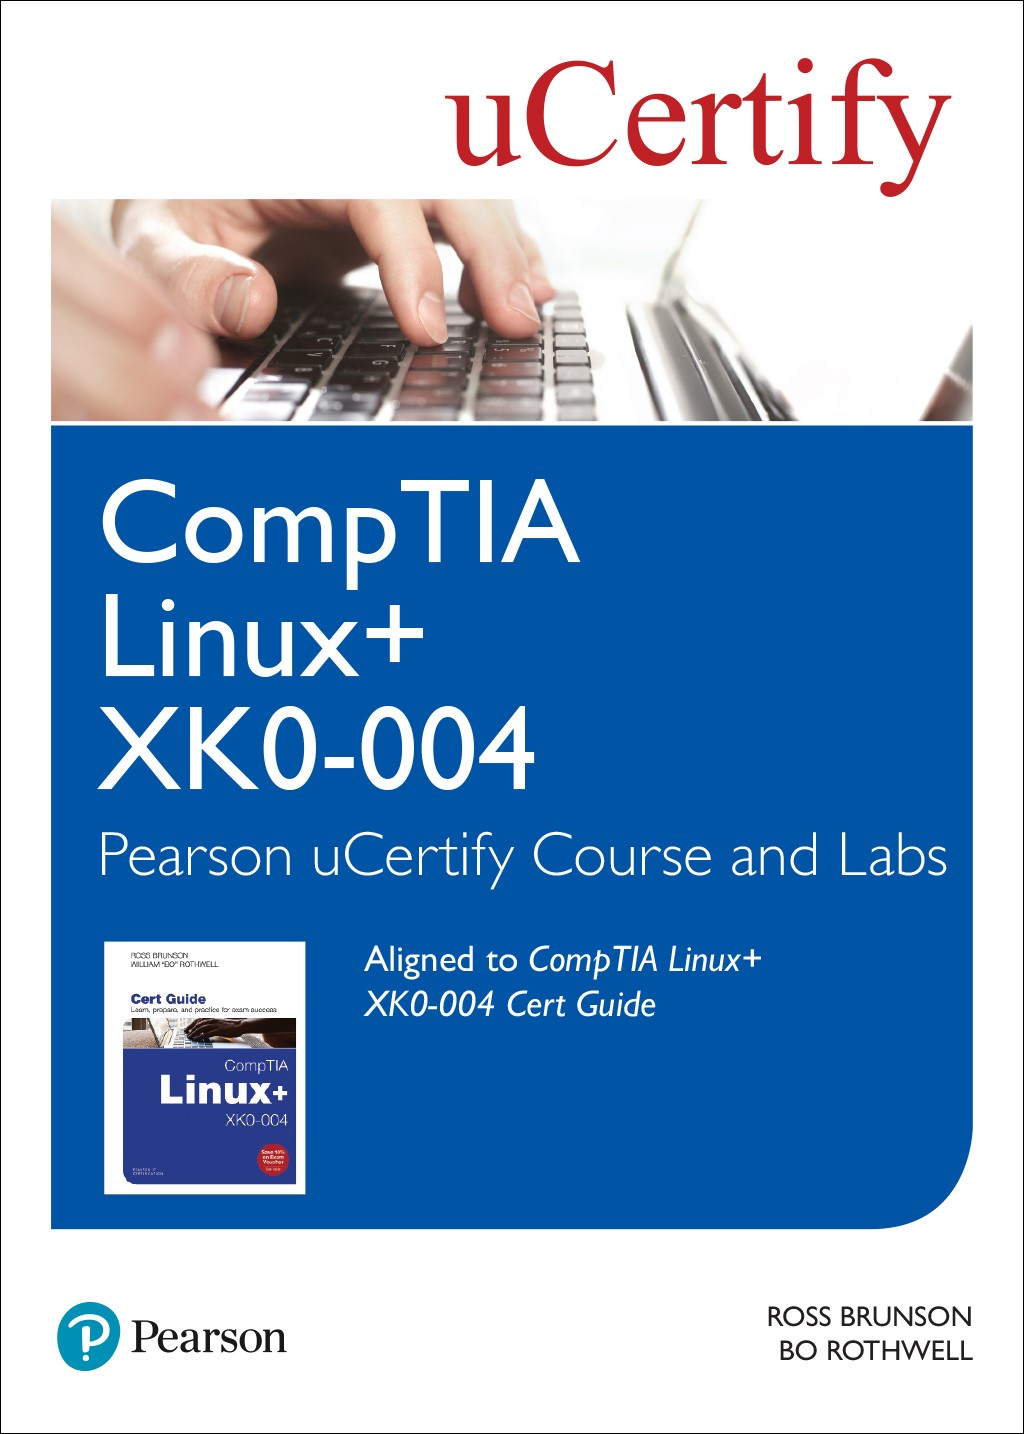 CompTIA Linux+ XK0-004 Cert Guide Pearson uCertify Course and Labs Access Code Card